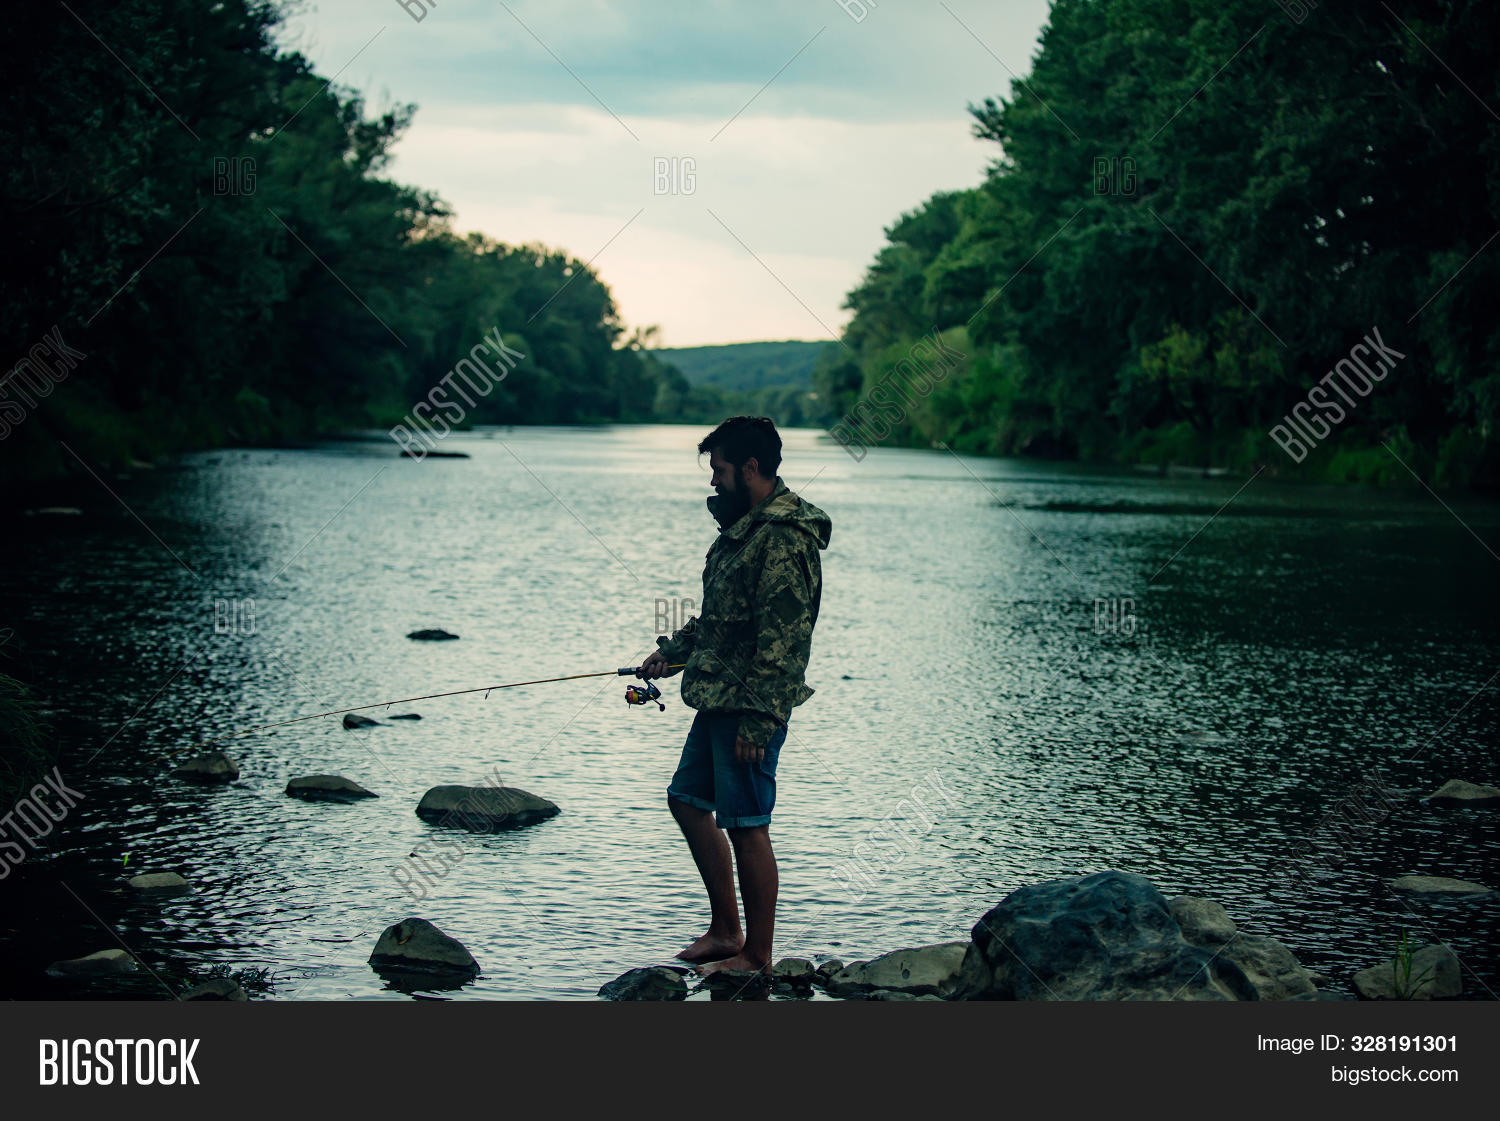 activity,angler,angling,bait,brook,brown,catch,catching,countryside,equipment,fish,fish-rod,fisher,fisherman,fishermen,fishery,fishing,fishman,fly,fly-fishing,freshwater,gear,hat,hobby,hook,landscape,leisure,lure,men,nature,net,outdoor,recreation,reel,river,rod,sky,spinner,spinning,spoon,sport,stream,summer,travel,trip,trout,vacation,water,weekend,wild